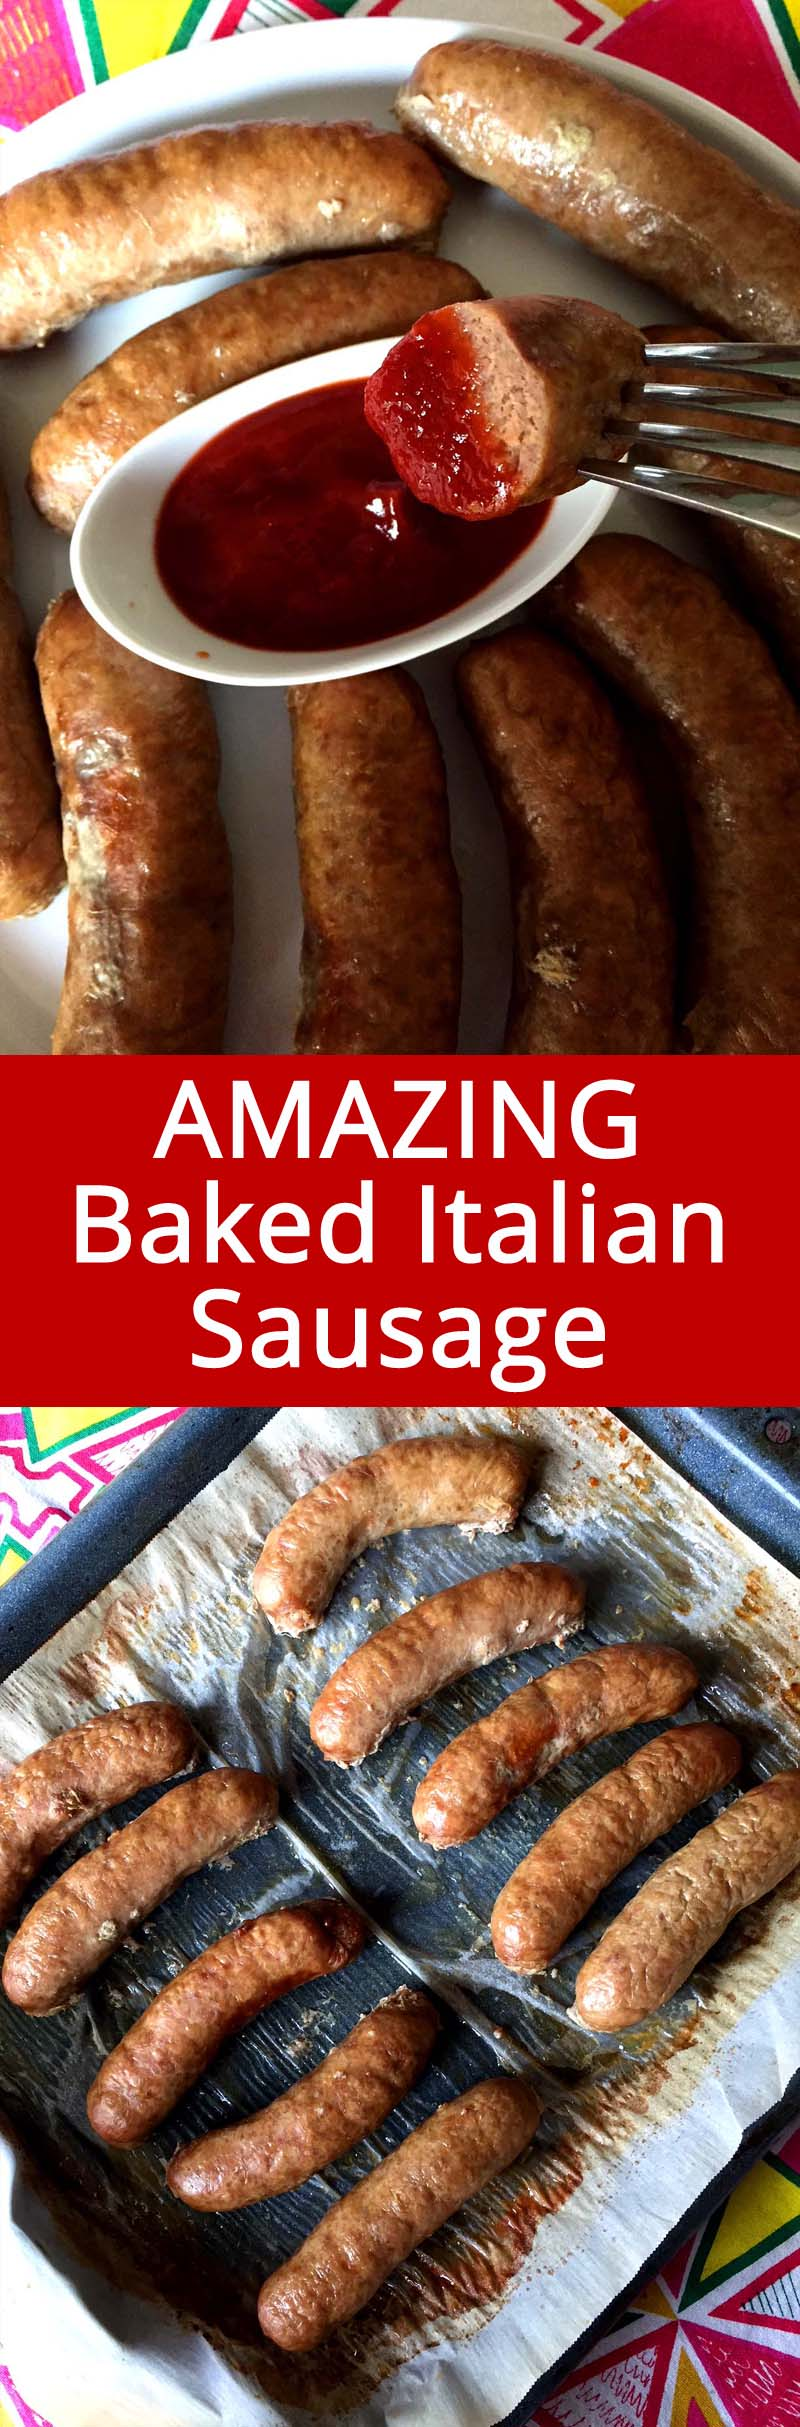 This oven baked Italian sausage is the easiest dinner ever! I always keep a package of Italian sausages in a freezer so I can make this dinner in a pinch! Just stick Italian sausages in the oven and bake to perfection - doesn't get easier that that! #sausage #italian